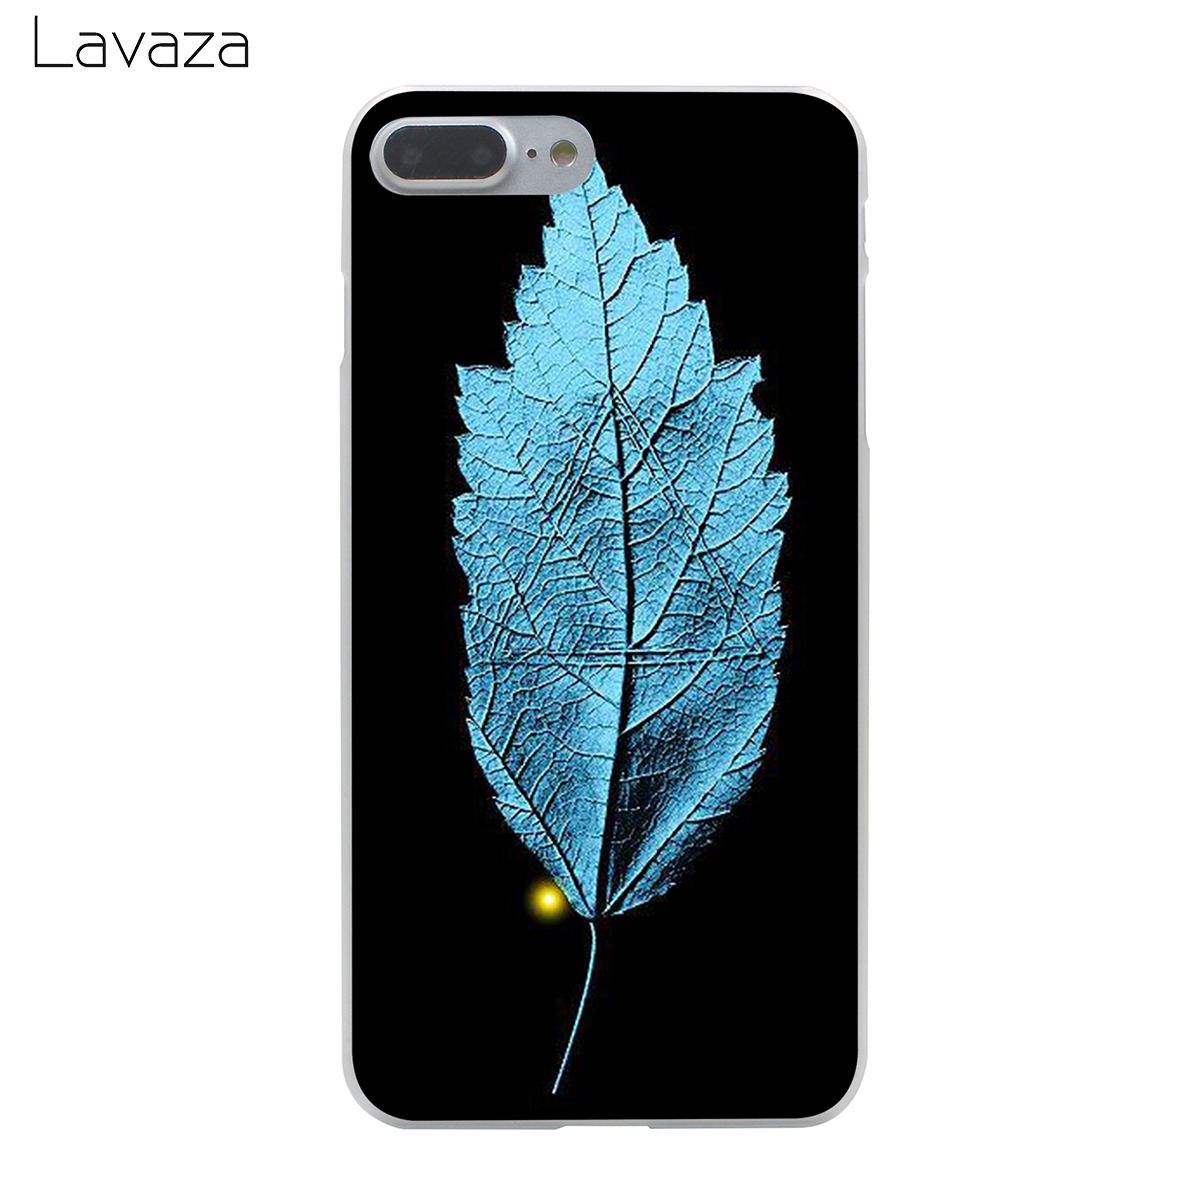 Lavaza fringe symbols tv show cover case for iphone x 10 8 7 6 6s lavaza fringe symbols tv show cover case for iphone x 10 8 7 6 6s plus 5s 5c 5 se 4s 4 7plus 6splus in half wrapped case from cellphones biocorpaavc Choice Image